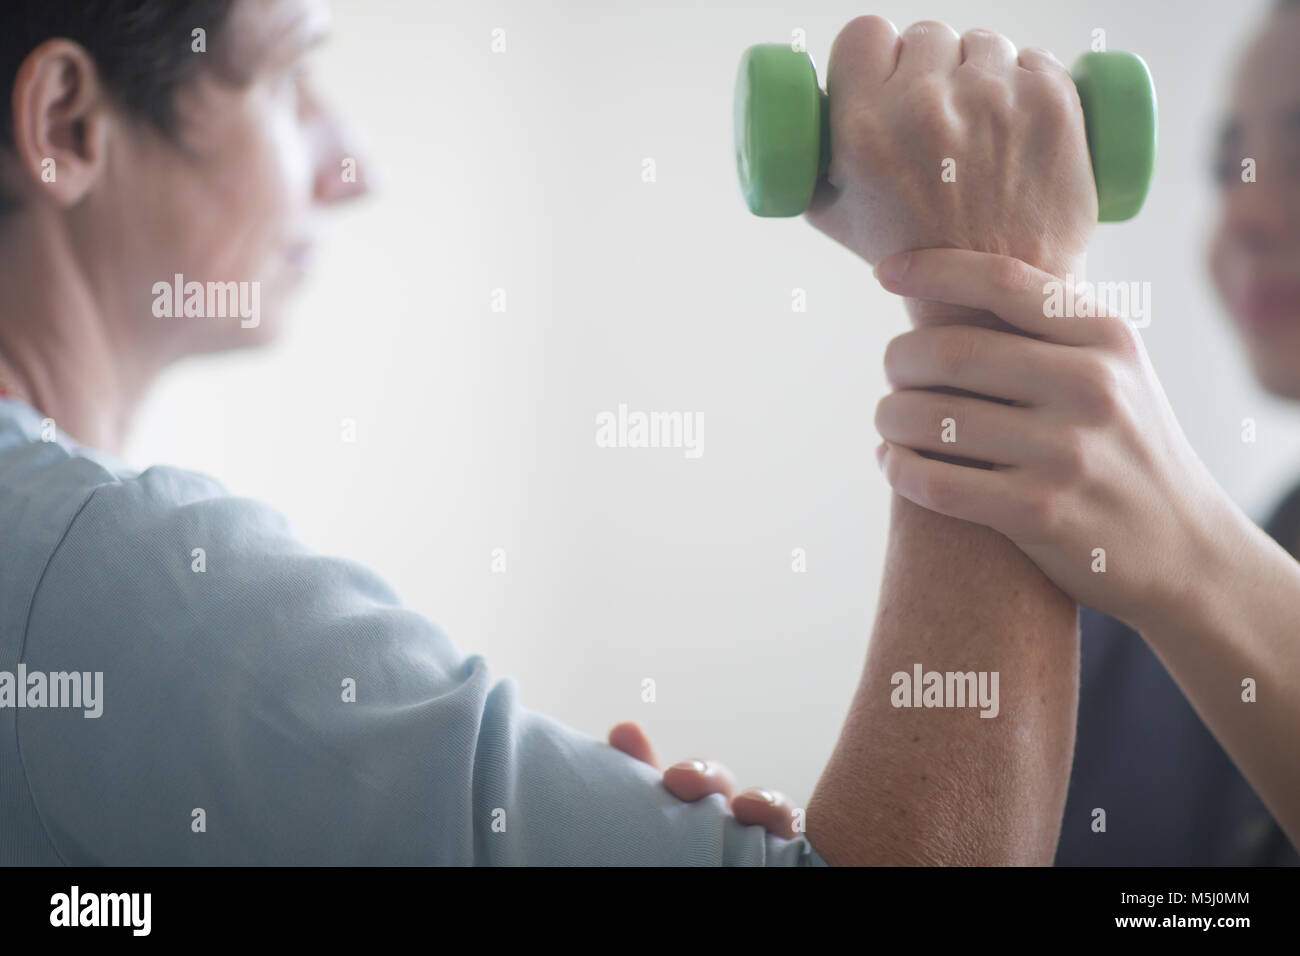 Physiotherapist and patient, training with dumbbell - Stock Image